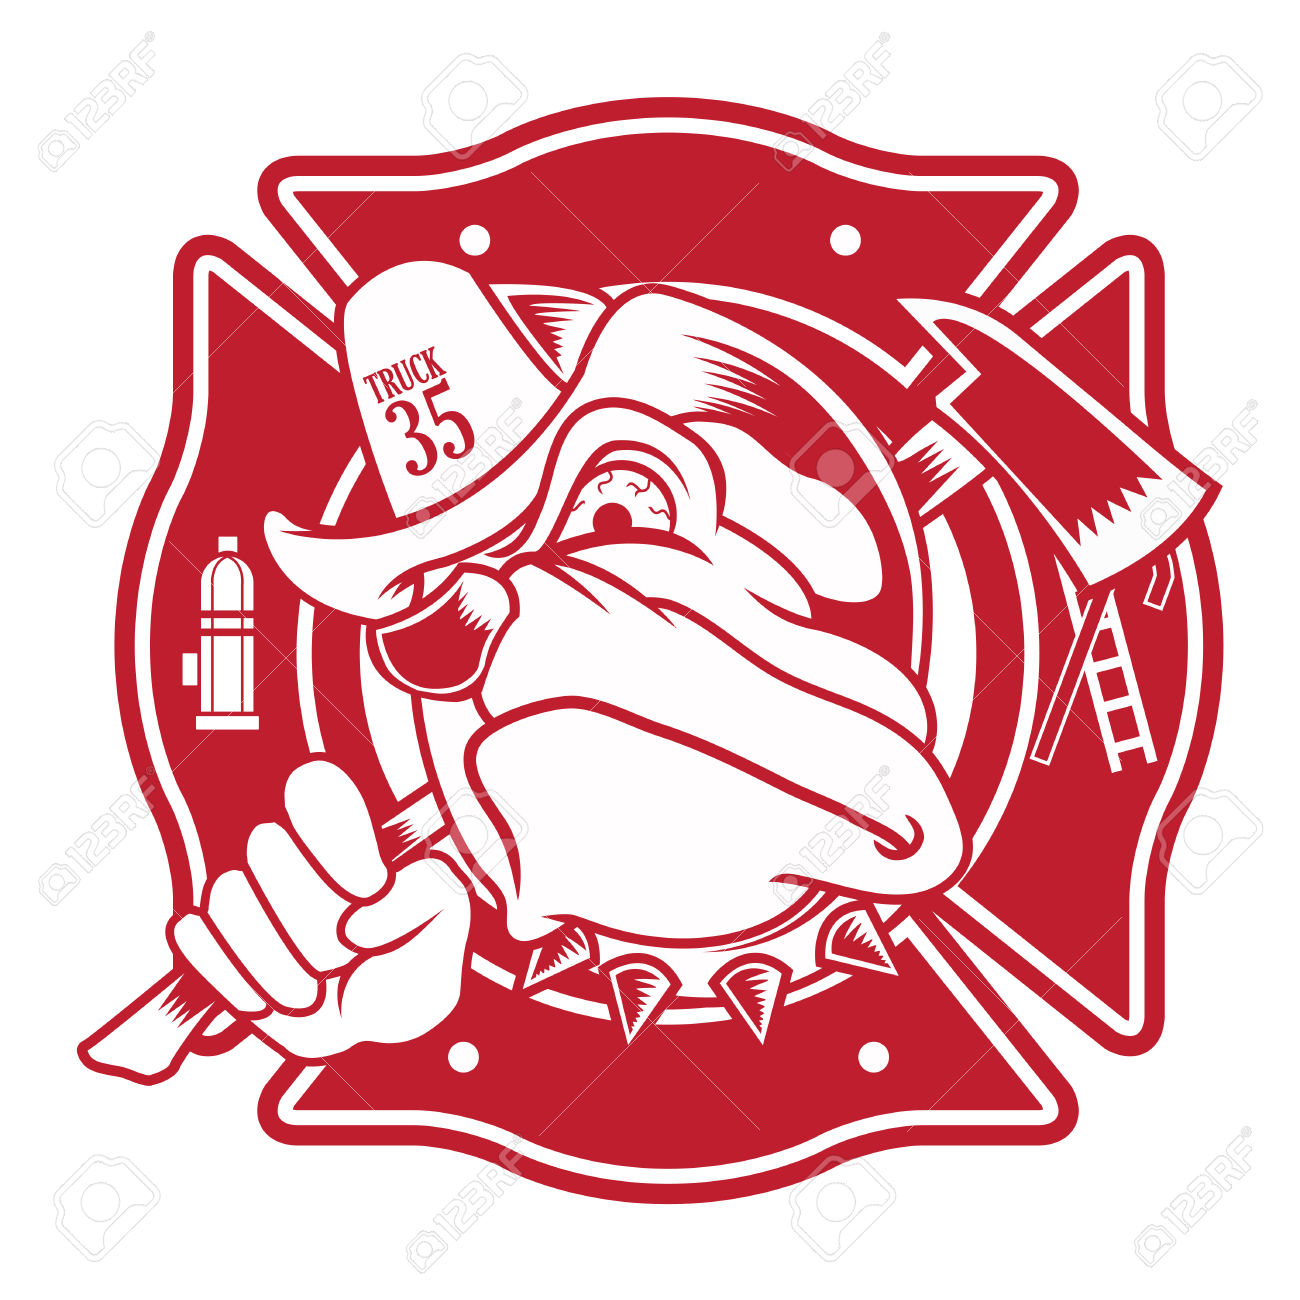 hight resolution of 5 001 fire department cliparts stock vector and royalty free fire